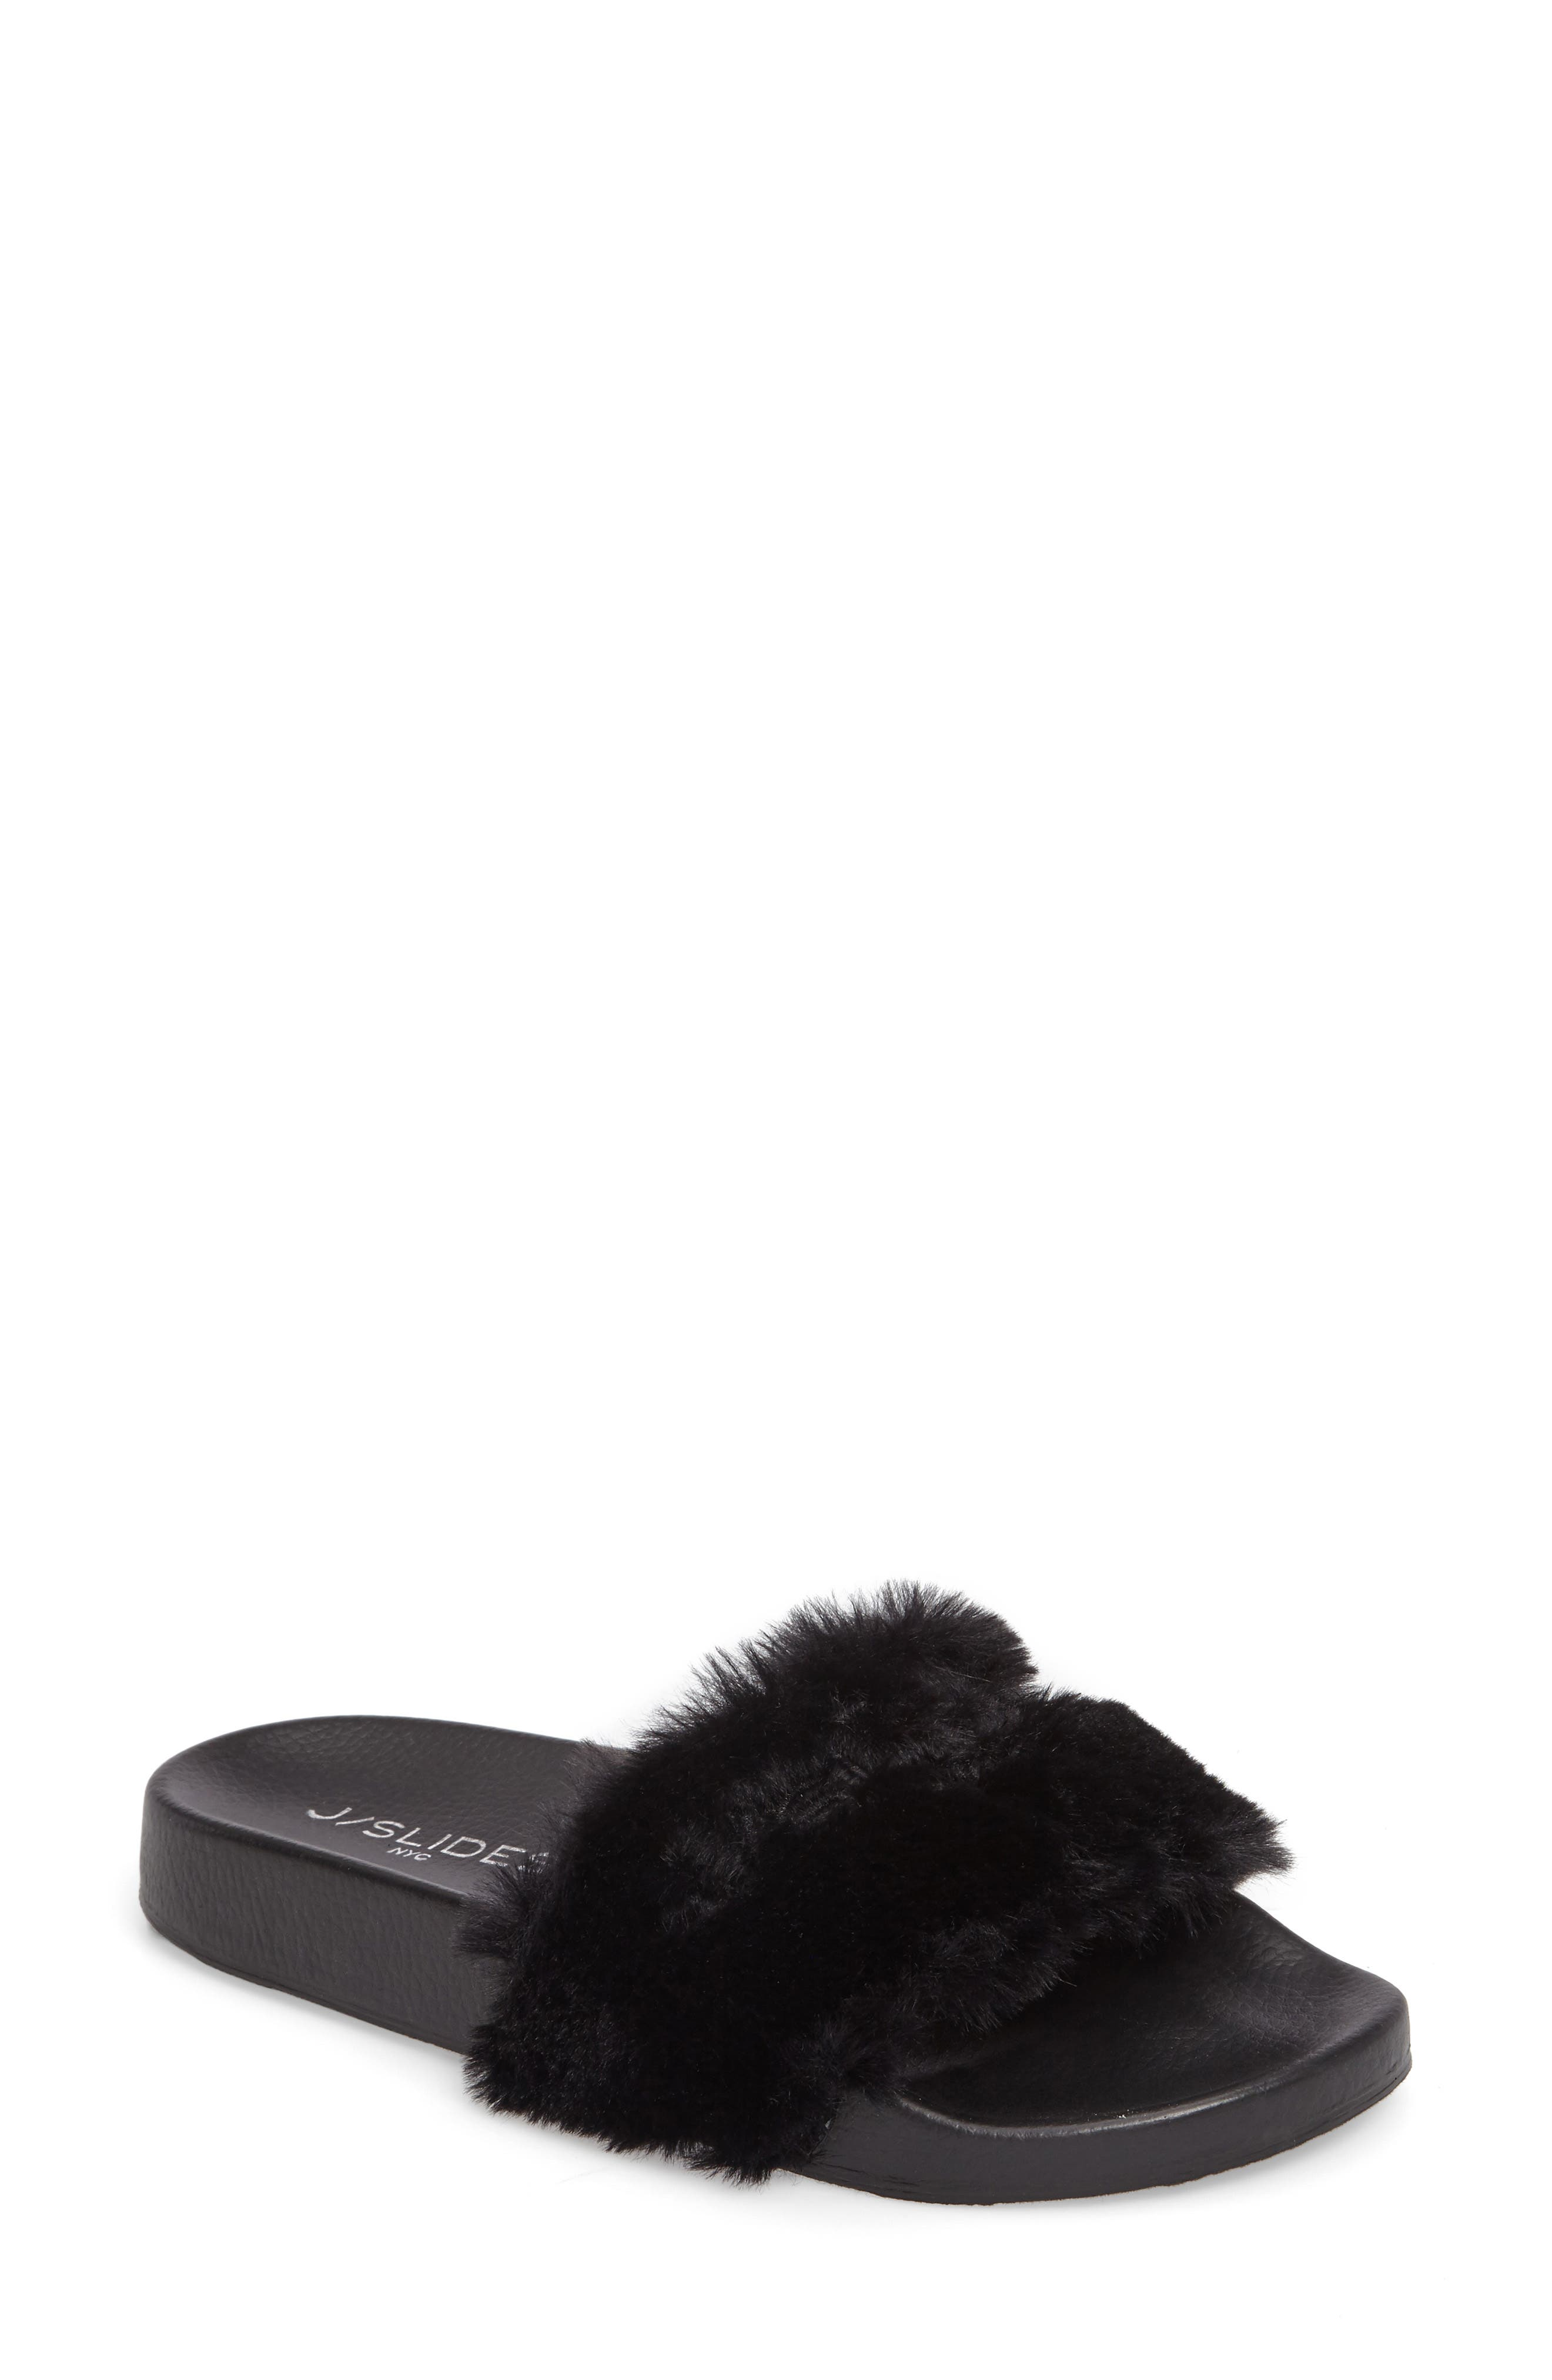 Samantha Faux Fur Slide,                             Main thumbnail 1, color,                             001